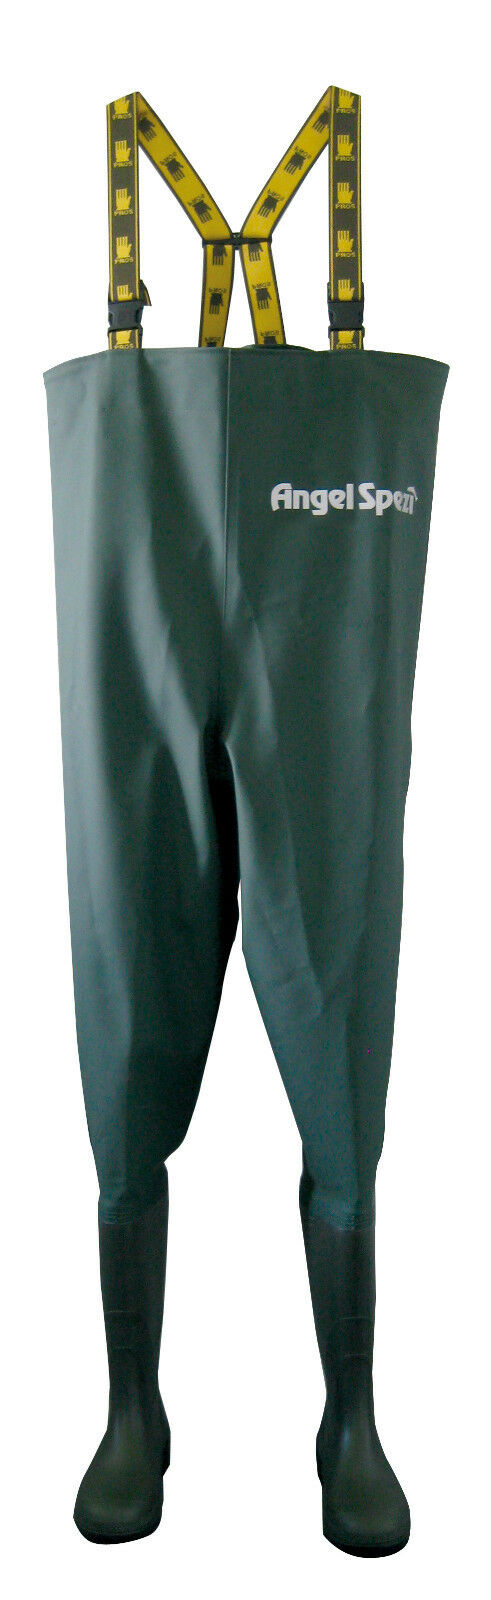 Angel specific quality waders professional fisherSie Quality All Größes WADERS PVC